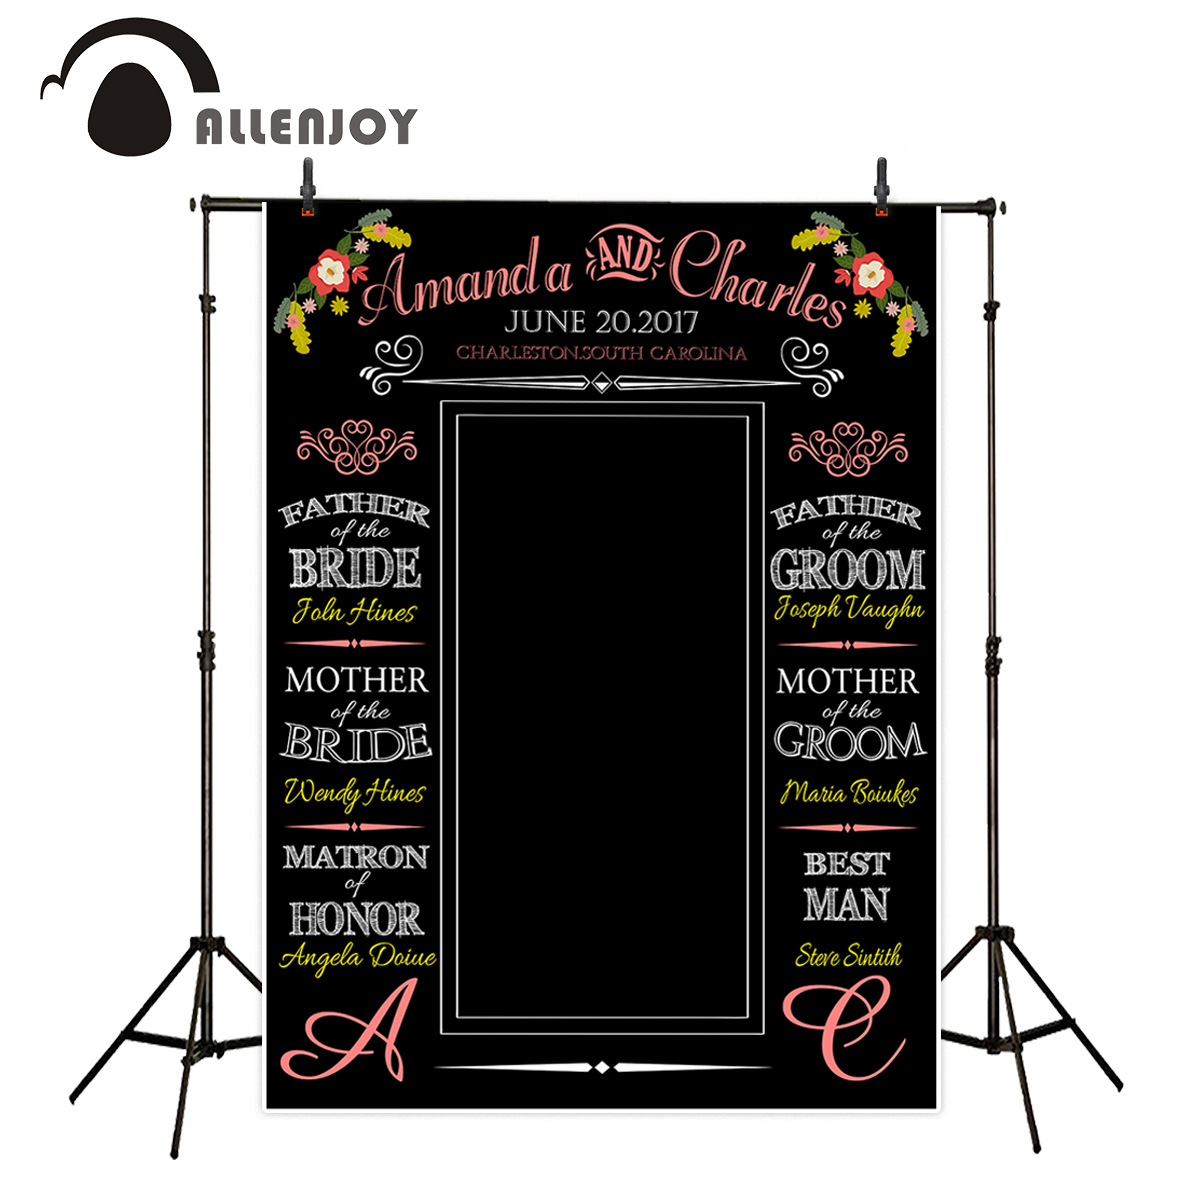 Allenjoy photography backdrops love wedding black bottom colorful backgrounds Valentine's Day theme backdrop allenjoy photography backdrops love pink romantic background photography wedding backdrop for valentine s day